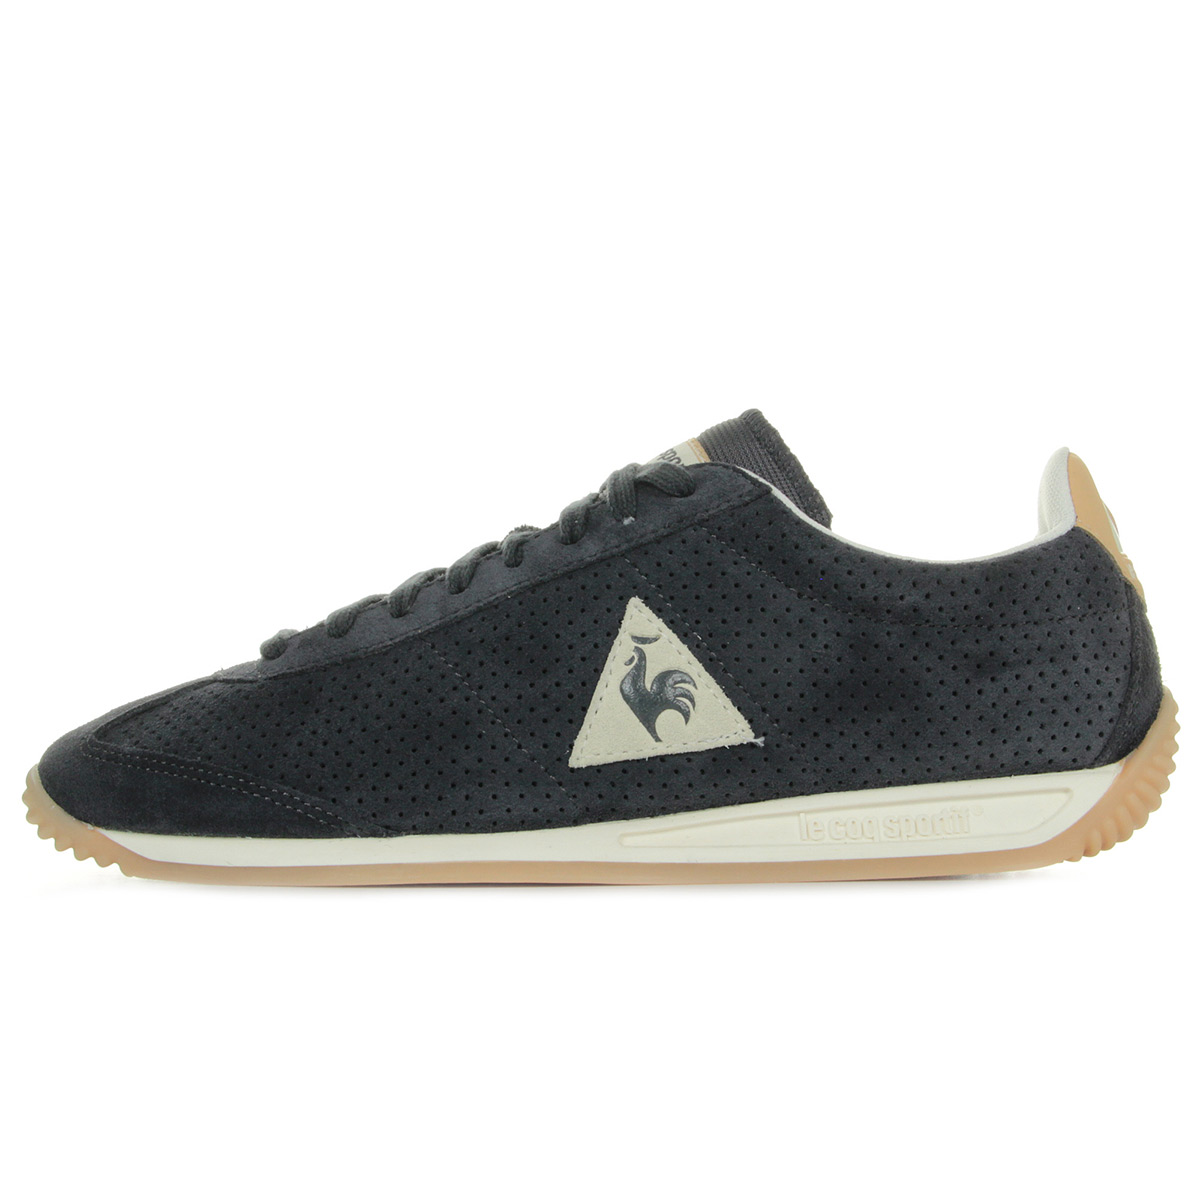 Le Coq Sportif Quartz Premium 1810178, Baskets mode homme